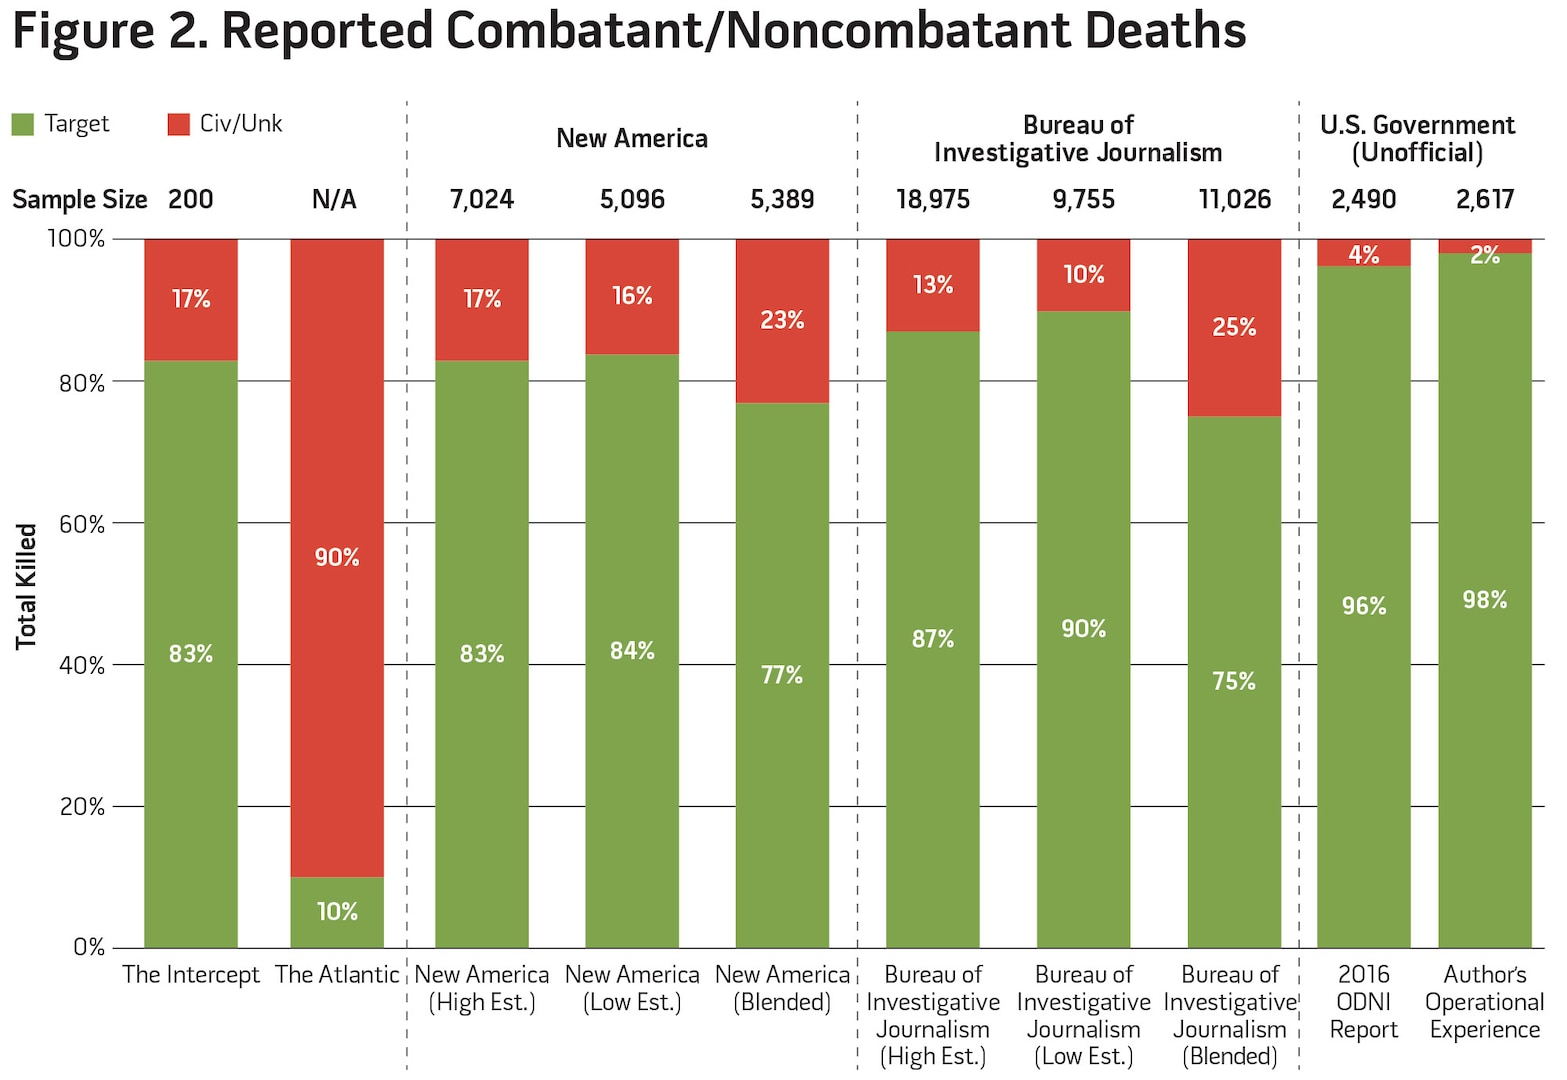 Figure 2. Reported Combatant/Noncombatant Deaths